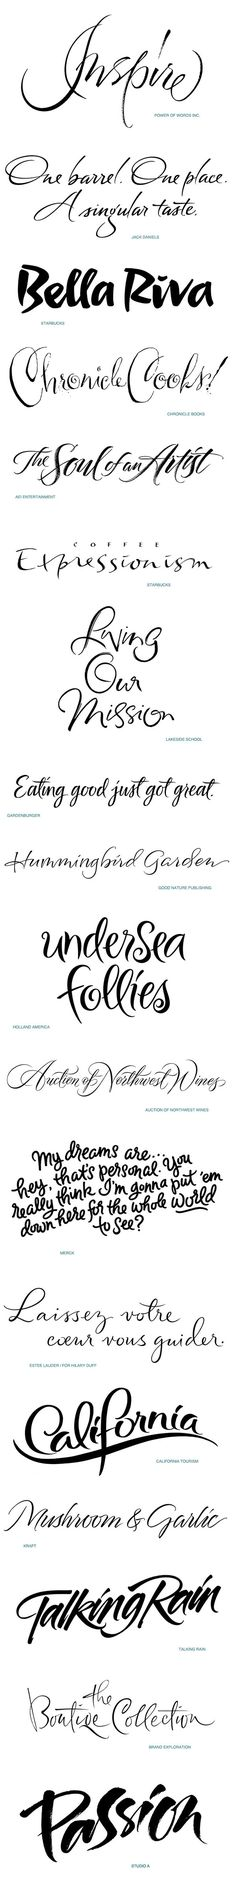 A portfolio of diverse styles of hand lettered scripts, calligraphy and…